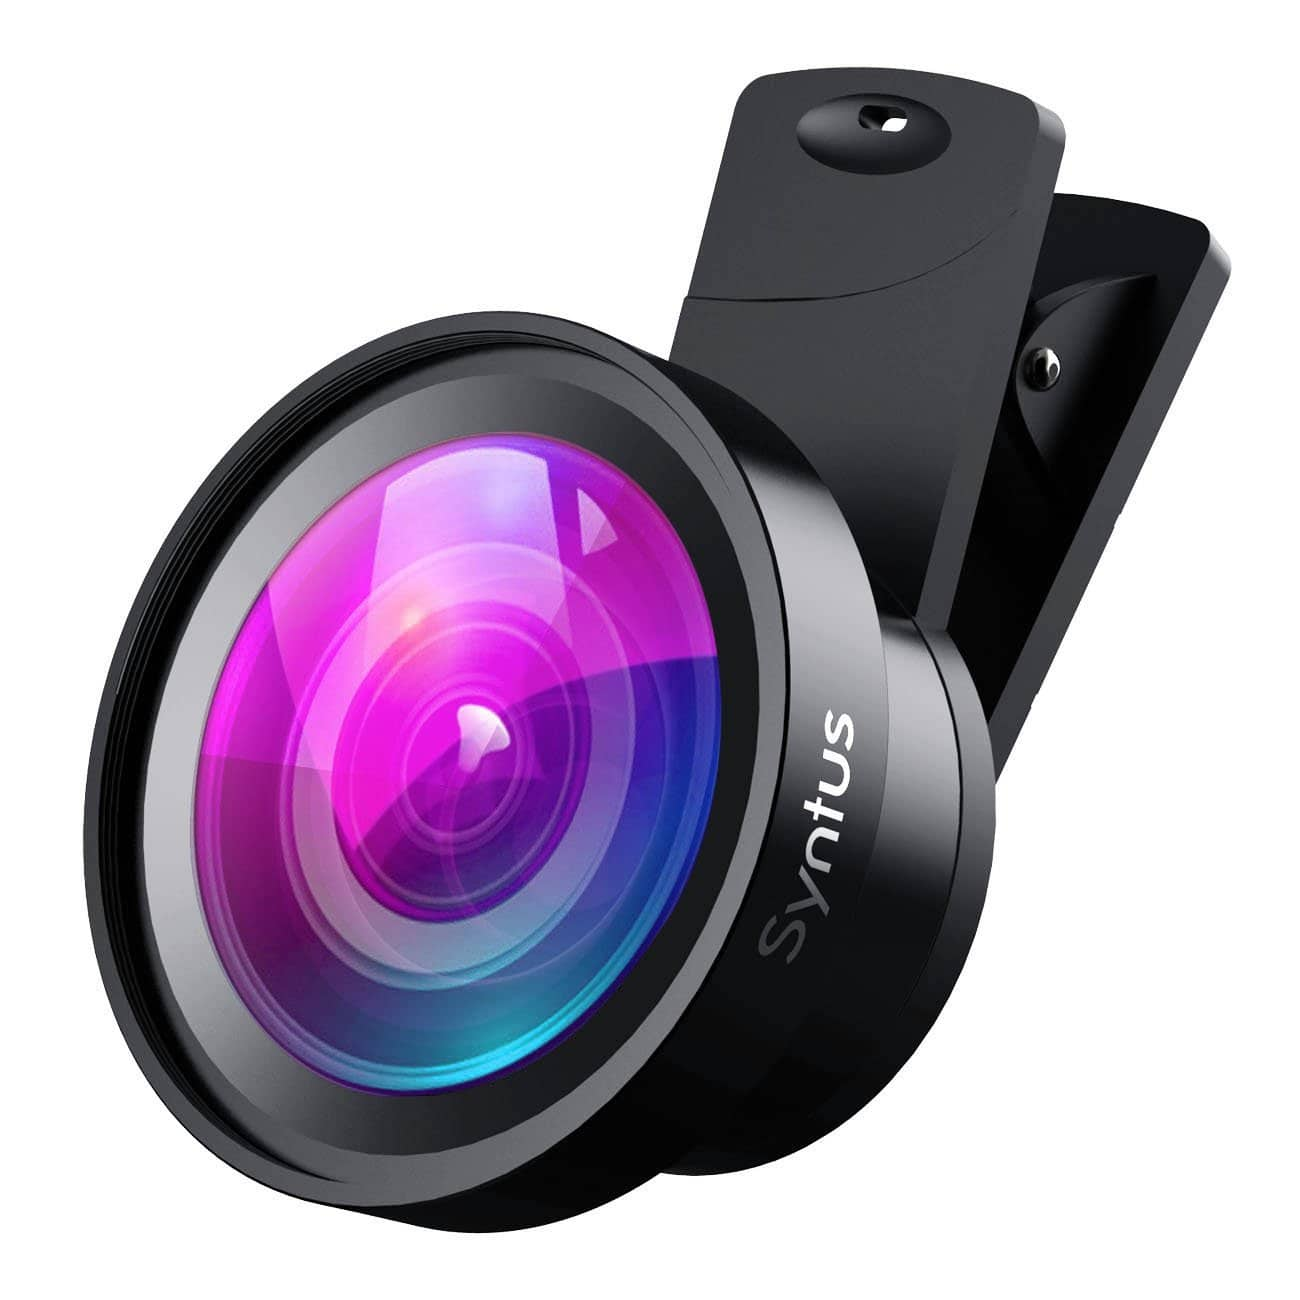 Syntus 0.45X Wide Lens and 12.5X Macro Lens Attachment Clip-on Cell Phone Camera Lenses Kit $8.05